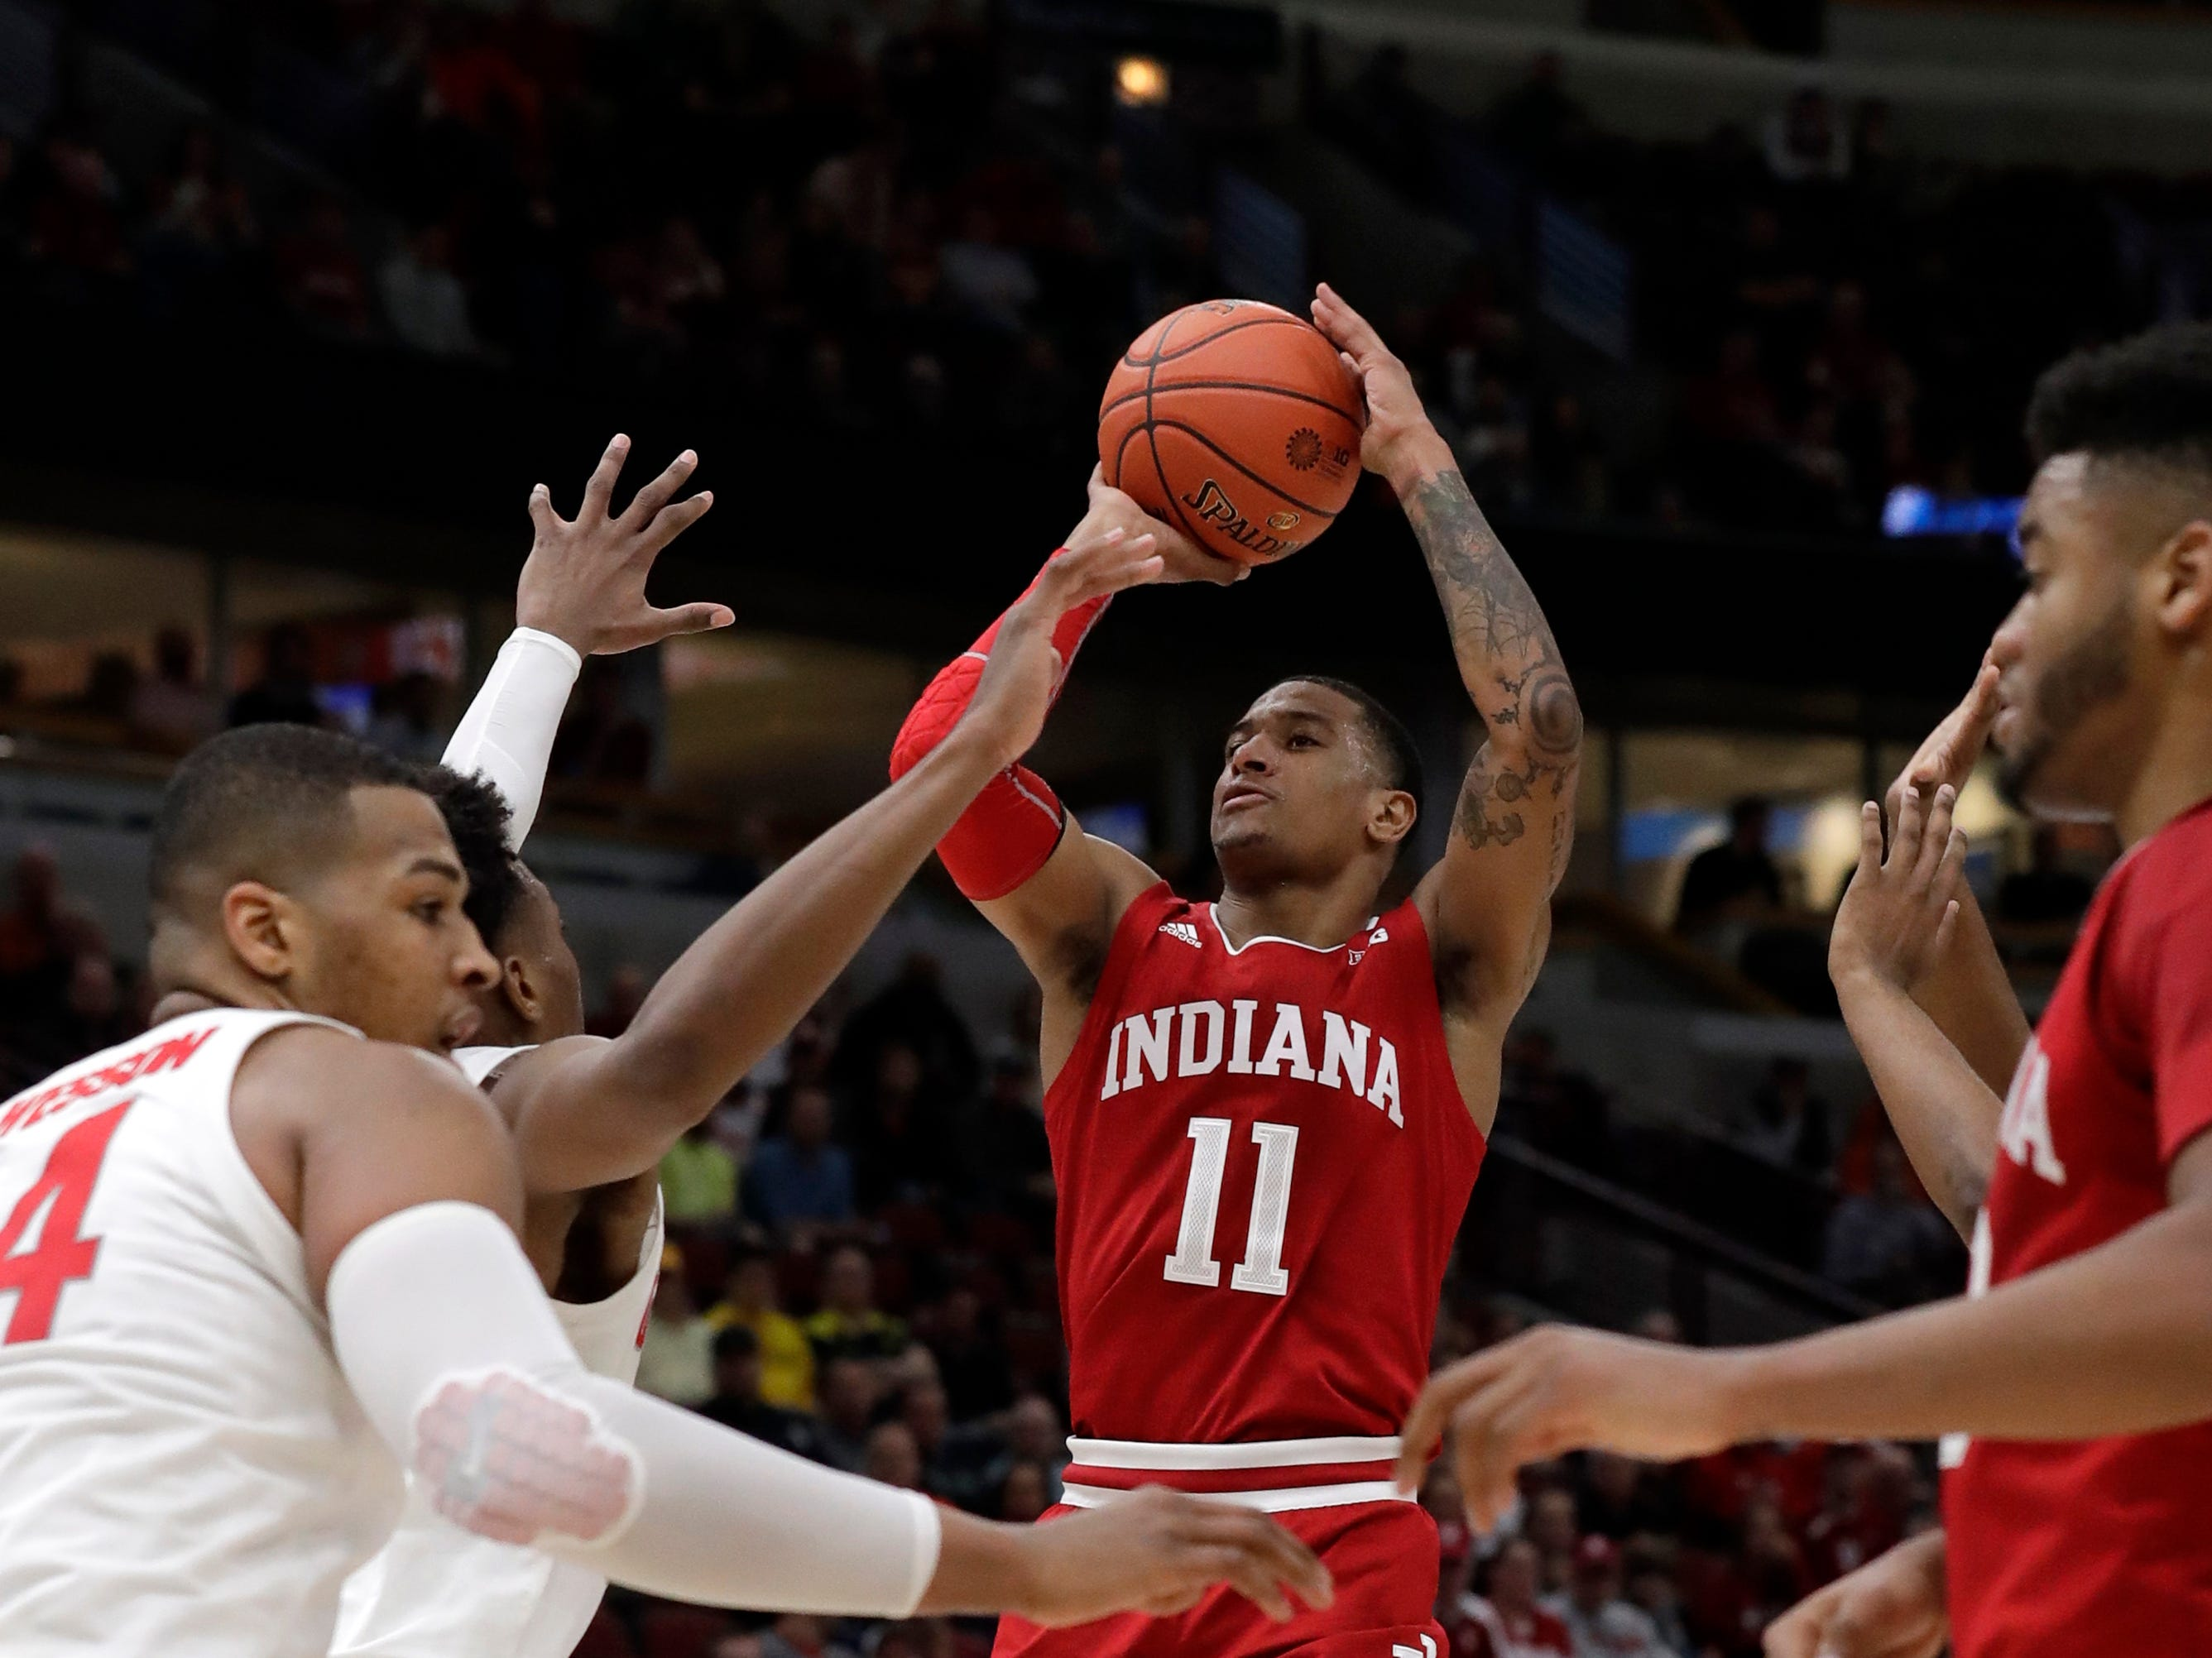 Indiana's Devonte Green (11) shoots during the first half of an NCAA college basketball game against the Ohio State in the second round of the Big Ten Conference tournament, Thursday, March 14, 2019, in Chicago. (AP Photo/Nam Y. Huh)